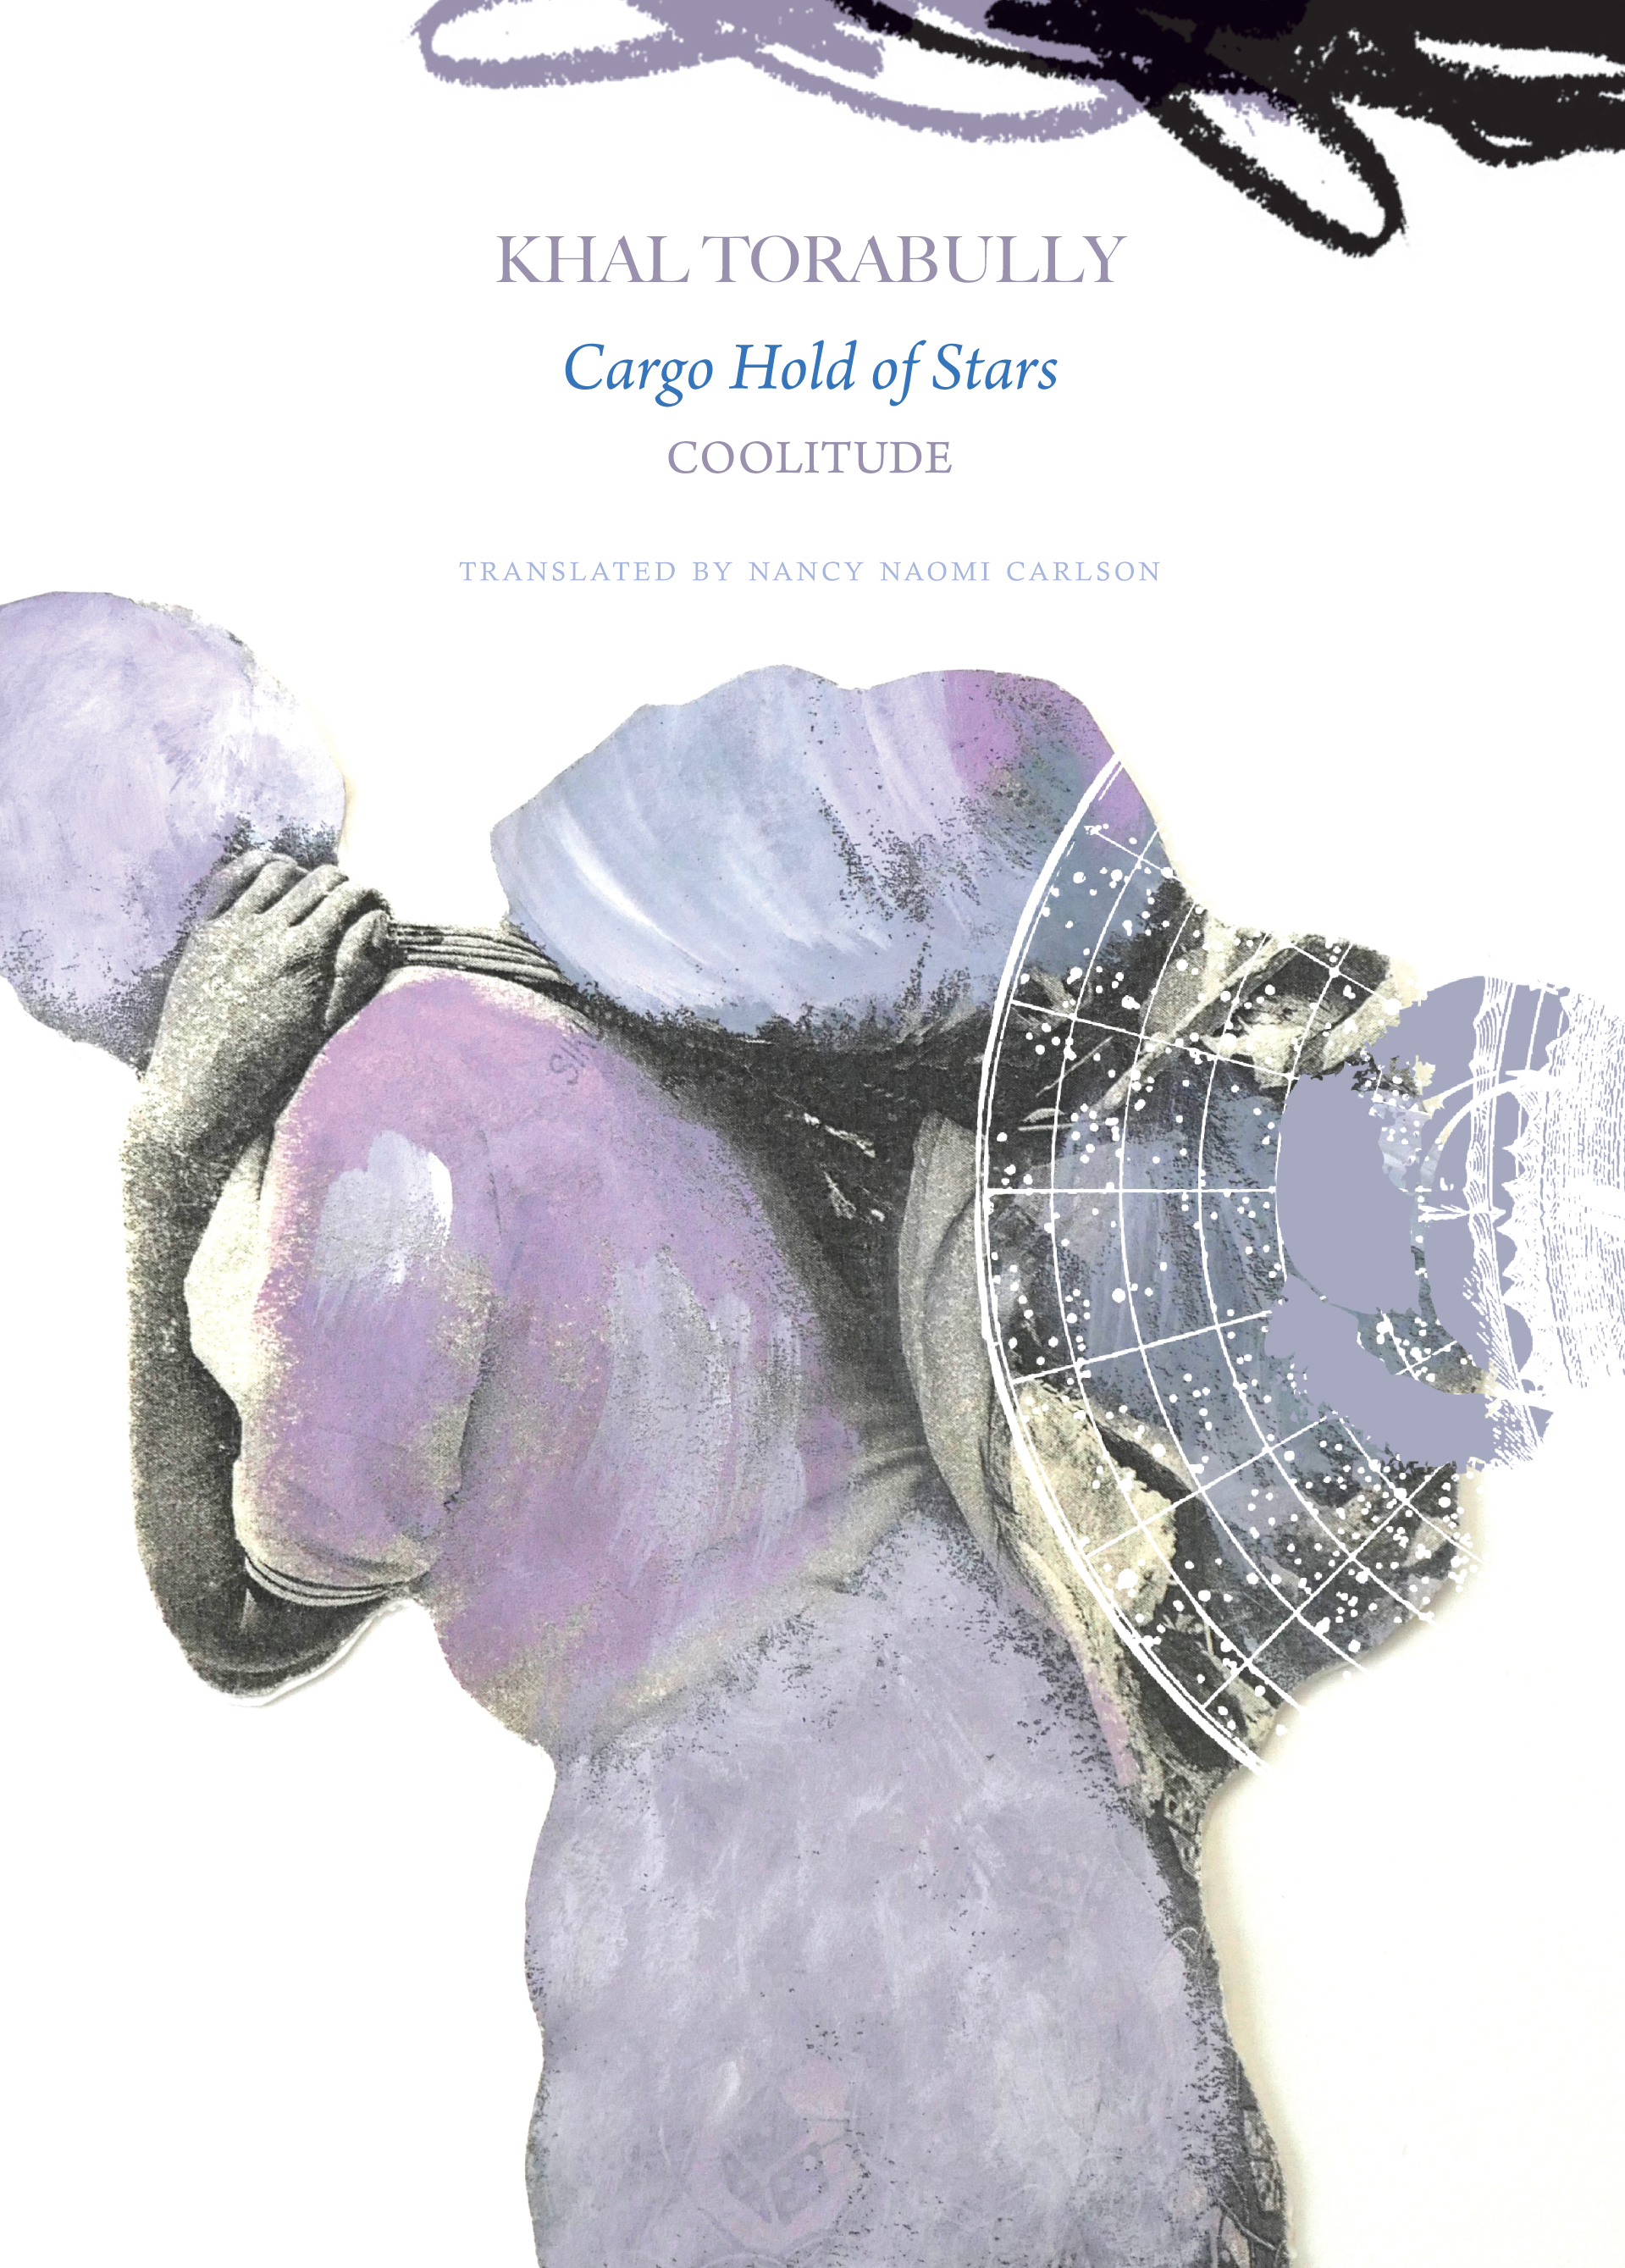 Cargo Hold of Stars: Coolitude by Khal Torabully |  Seagull Books